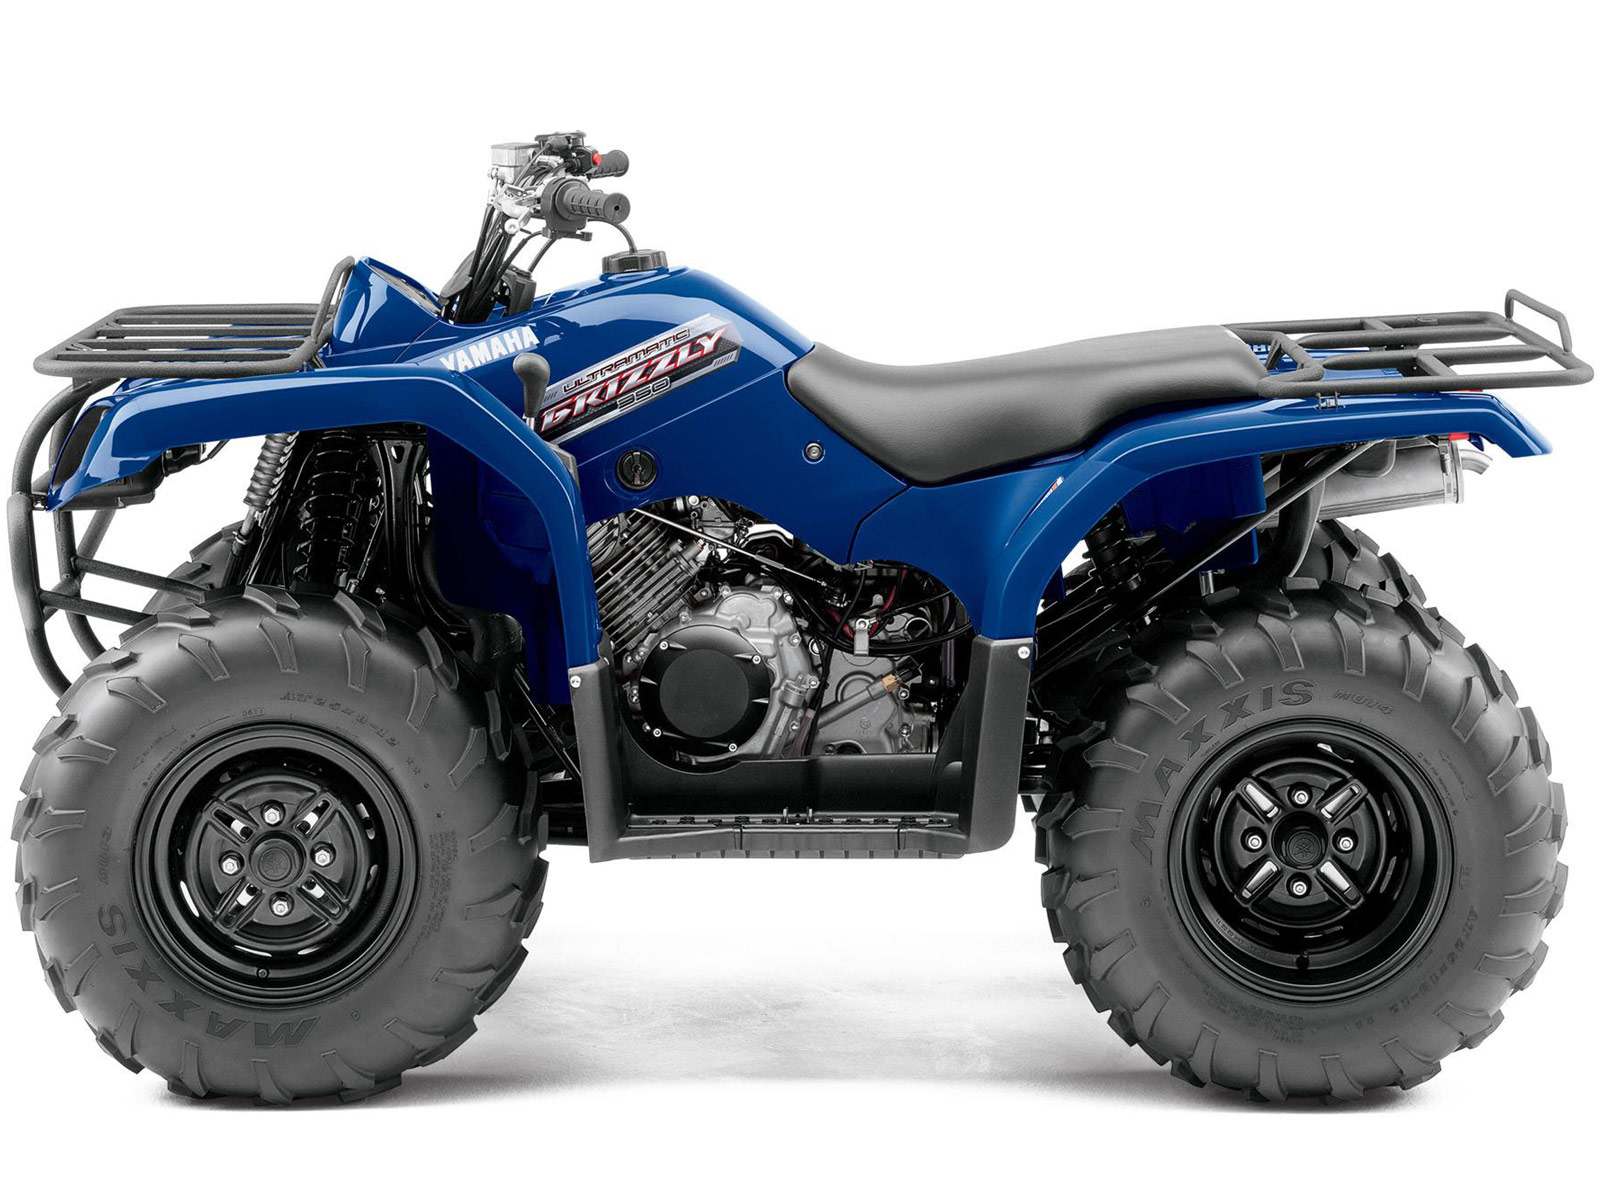 2013 yamaha grizzly 350 auto 4x4 atv pictures